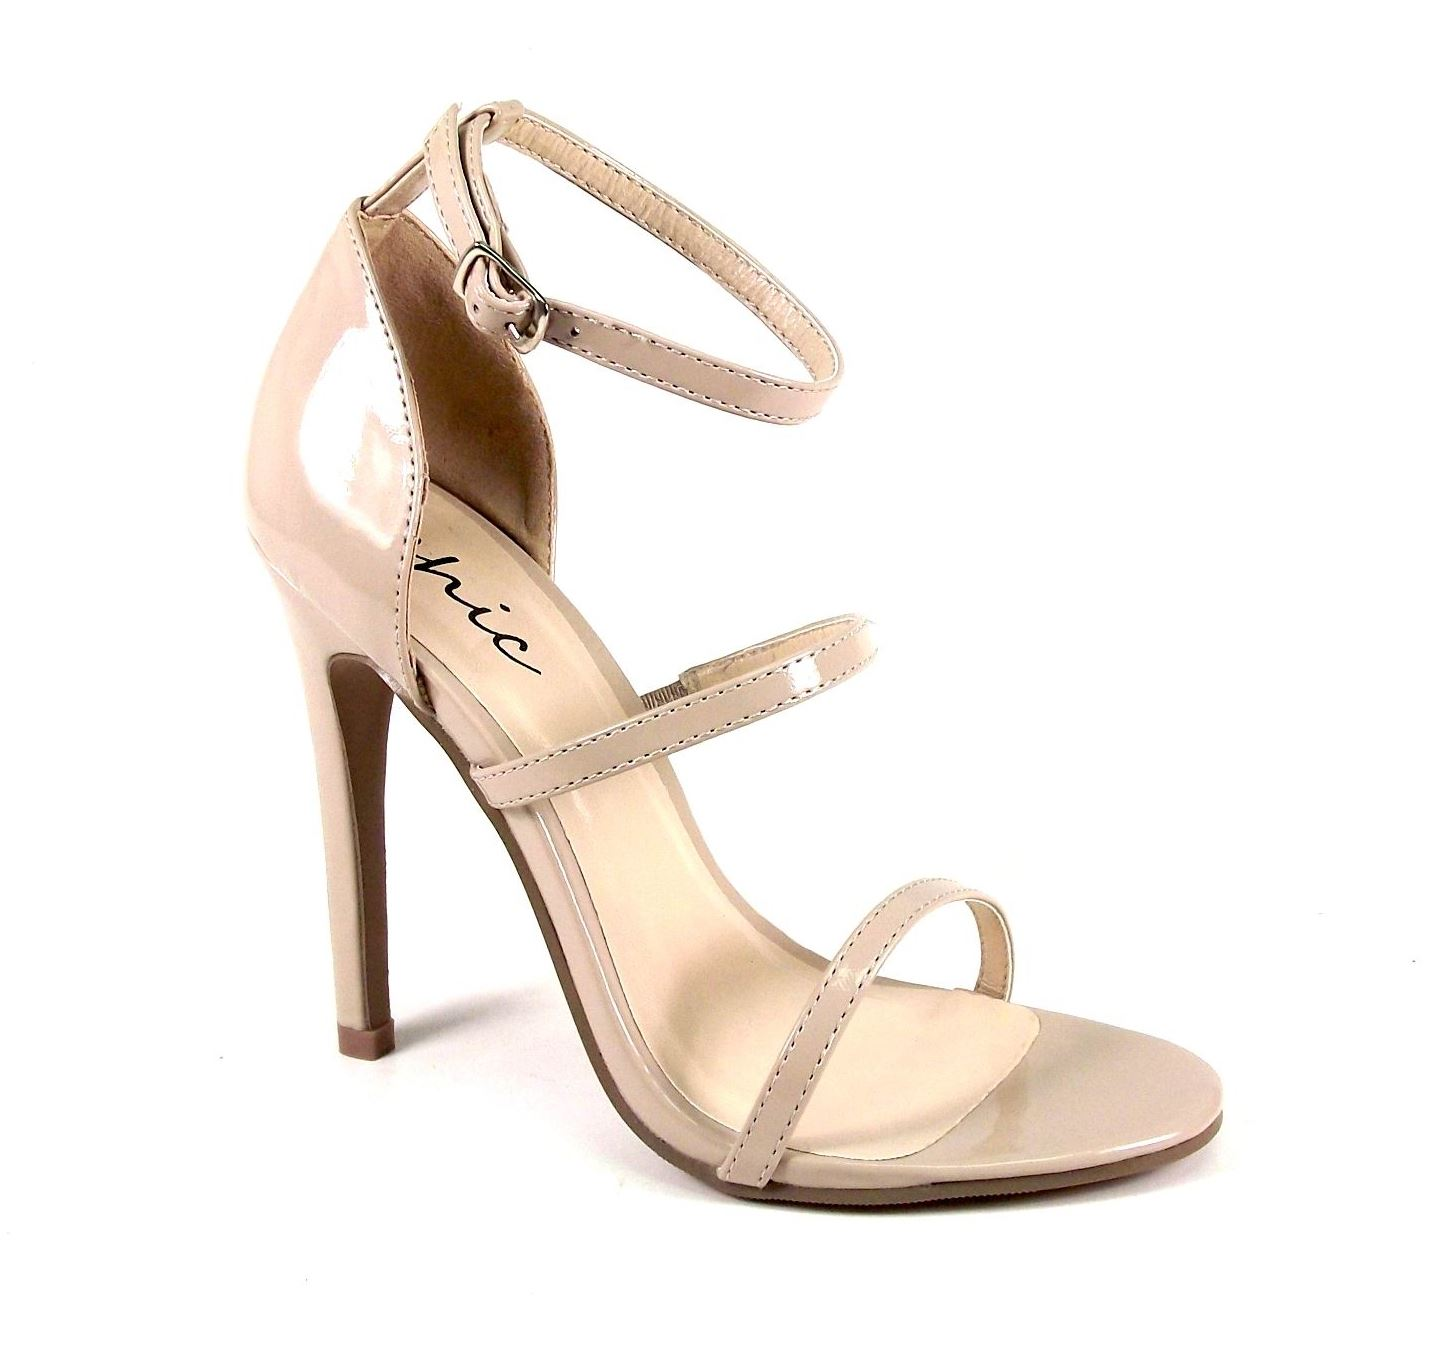 womens ankle strappy high heels stiletto party evening ladies sandals shoes size ebay. Black Bedroom Furniture Sets. Home Design Ideas